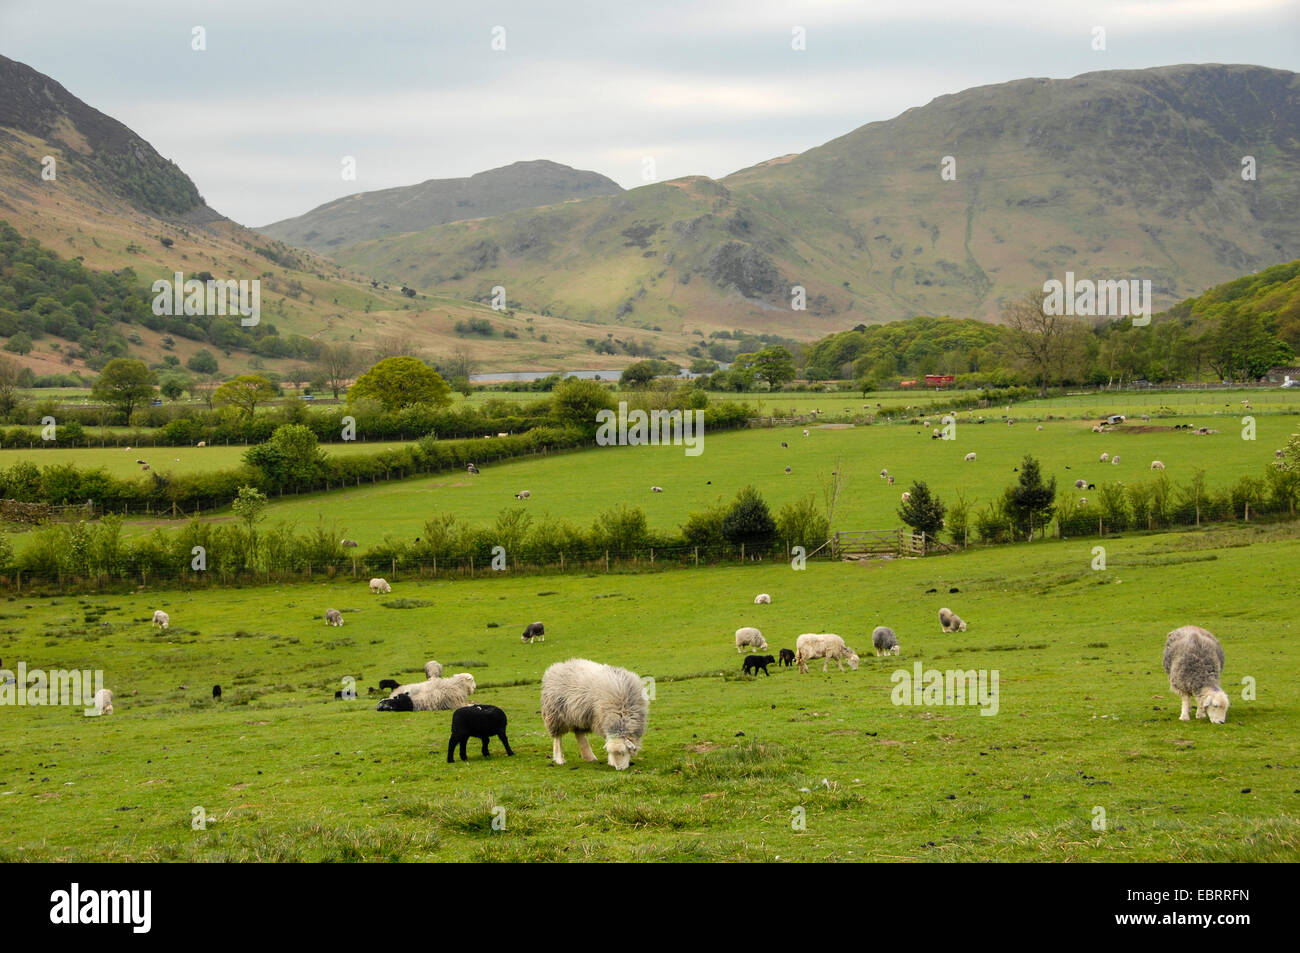 domestic sheep (Ovis ammon f. aries), flocks in an extensive meadow landscape in the Lake District, United Kingdom, - Stock Image